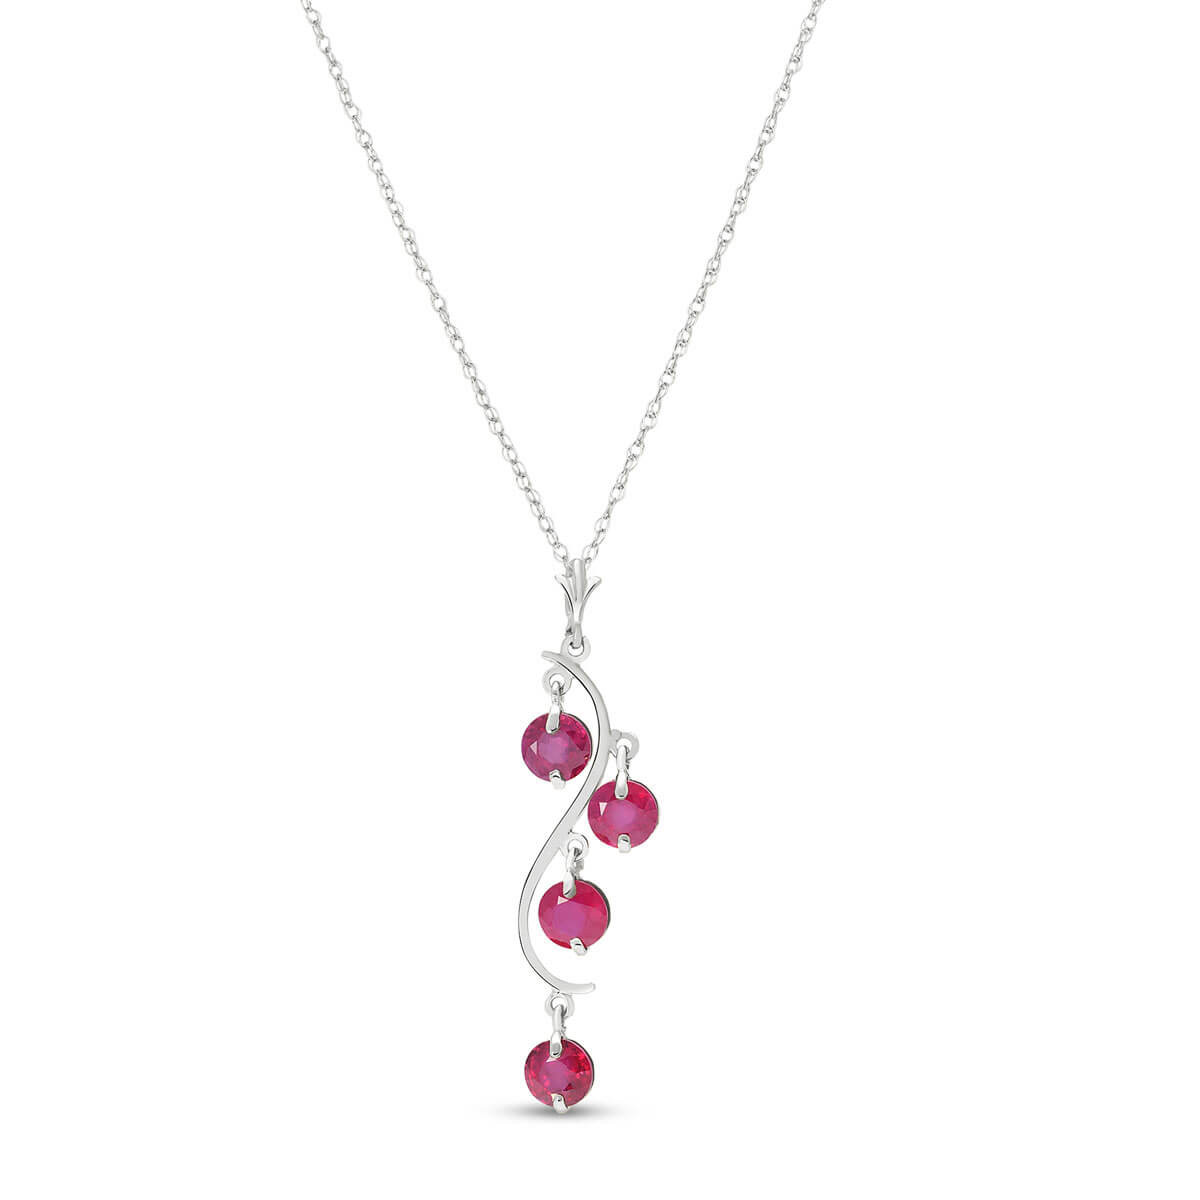 Ruby Dream Catcher Pendant Necklace 2 ctw in 9ct White Gold